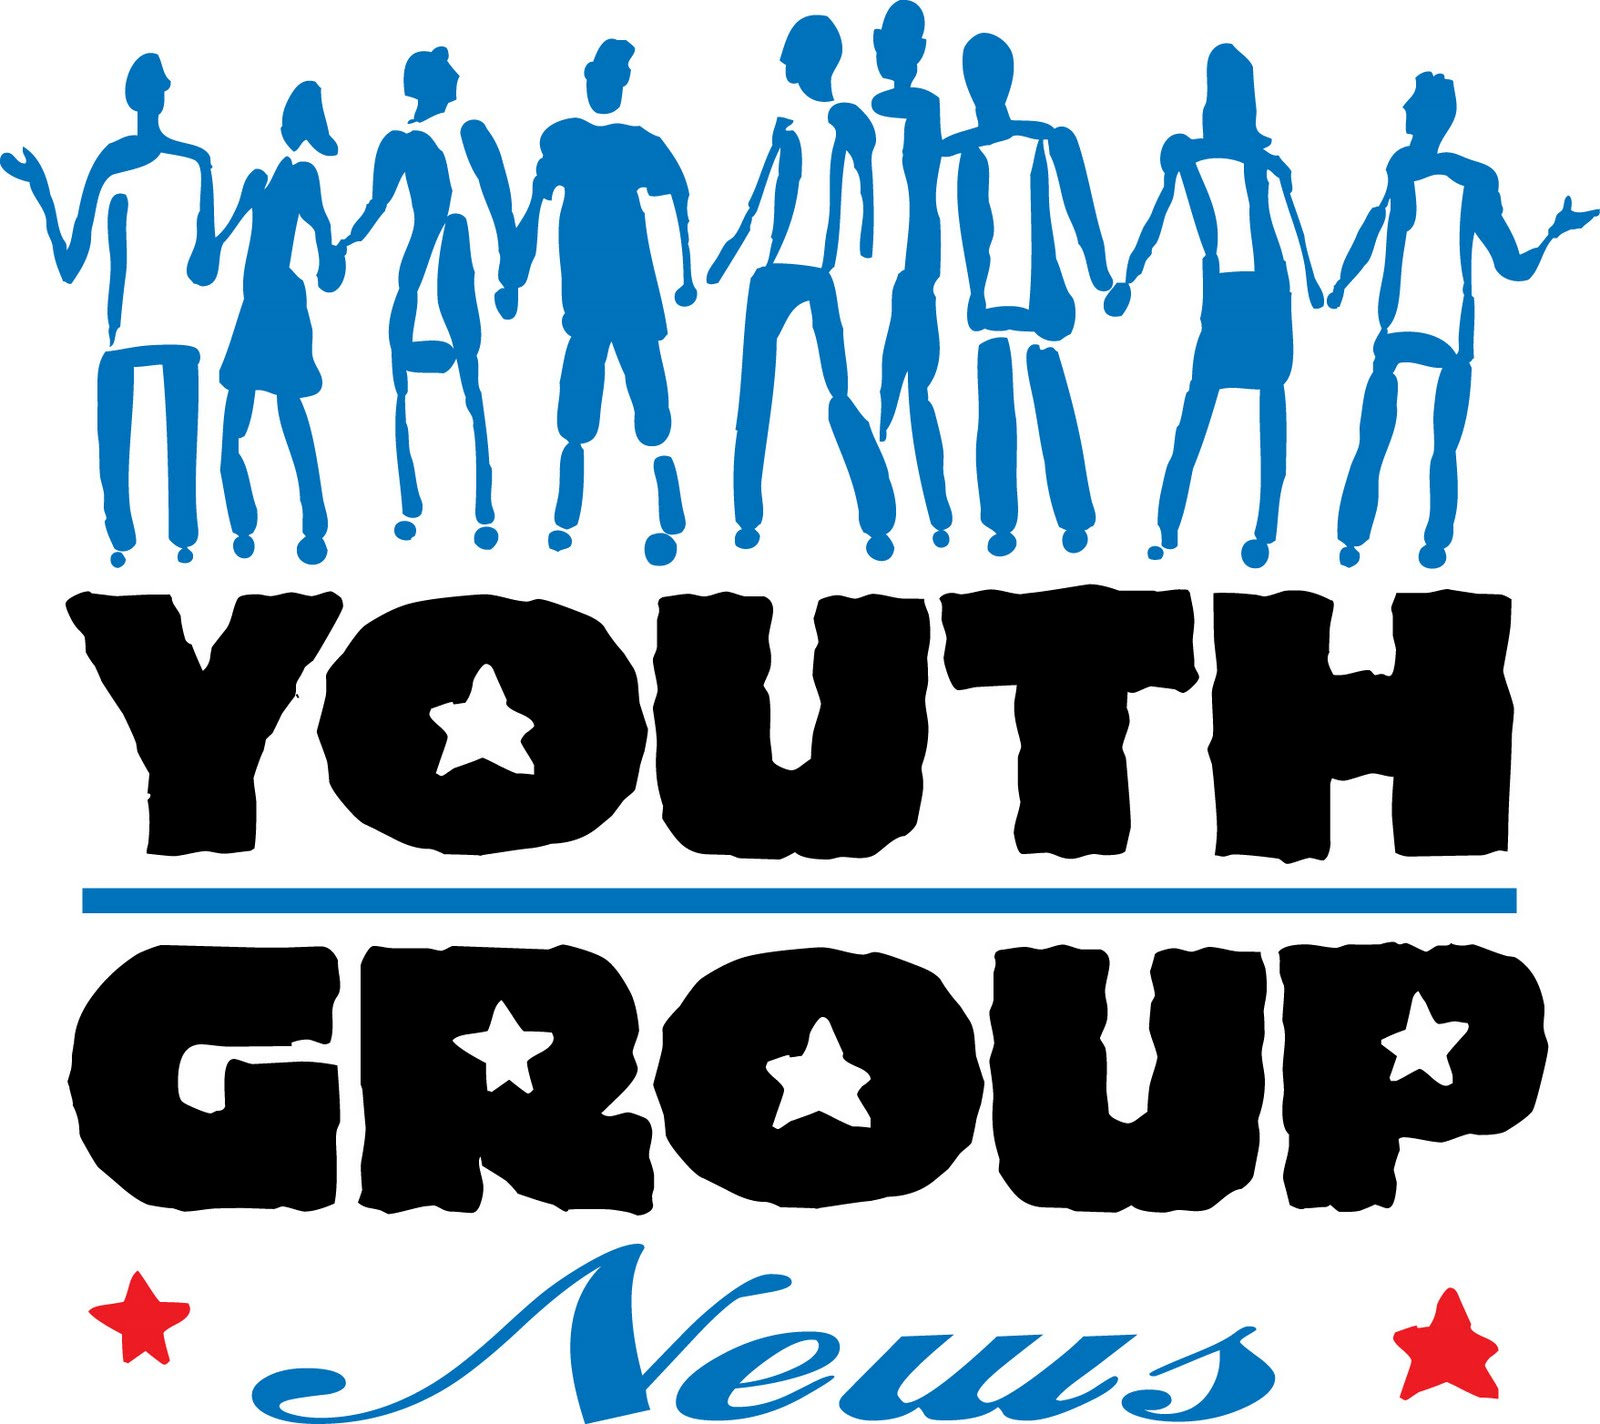 Community clipart youth worker Together clipart  Youth Free